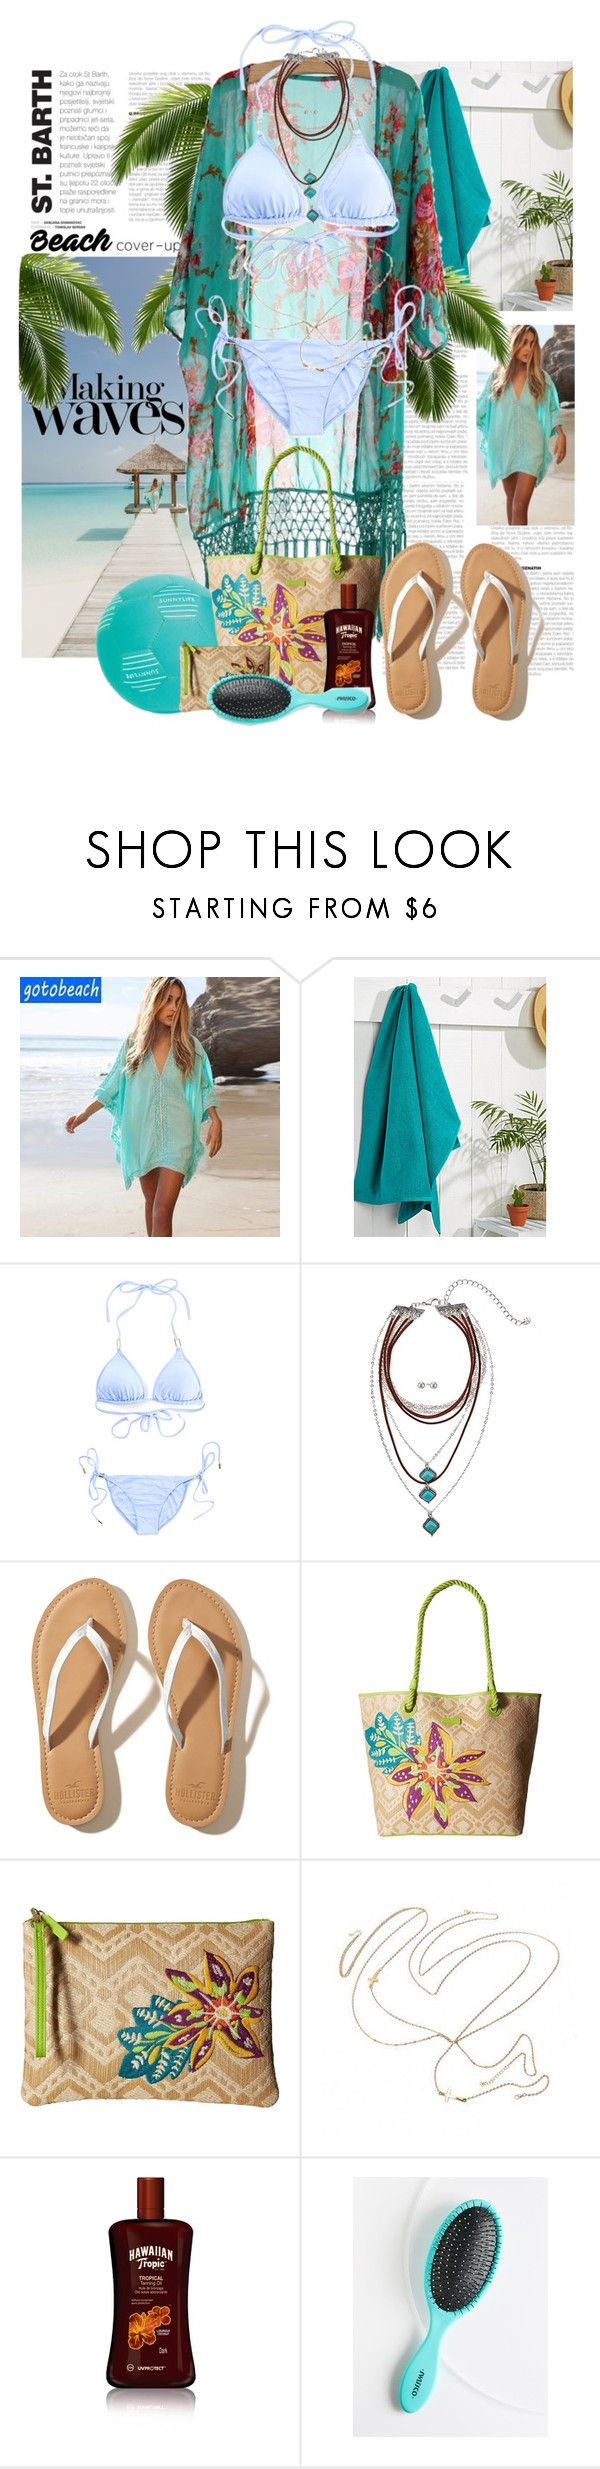 """""""Making Waves"""" by summersunshinesk7 ❤ liked on Polyvore featuring Sunset Hours, Balmain, Simons Maison, Indian Ocean, Melissa Odabash, M&F Western, Hollister Co., Vera Bradley, Hawaiian Tropic and Free People"""